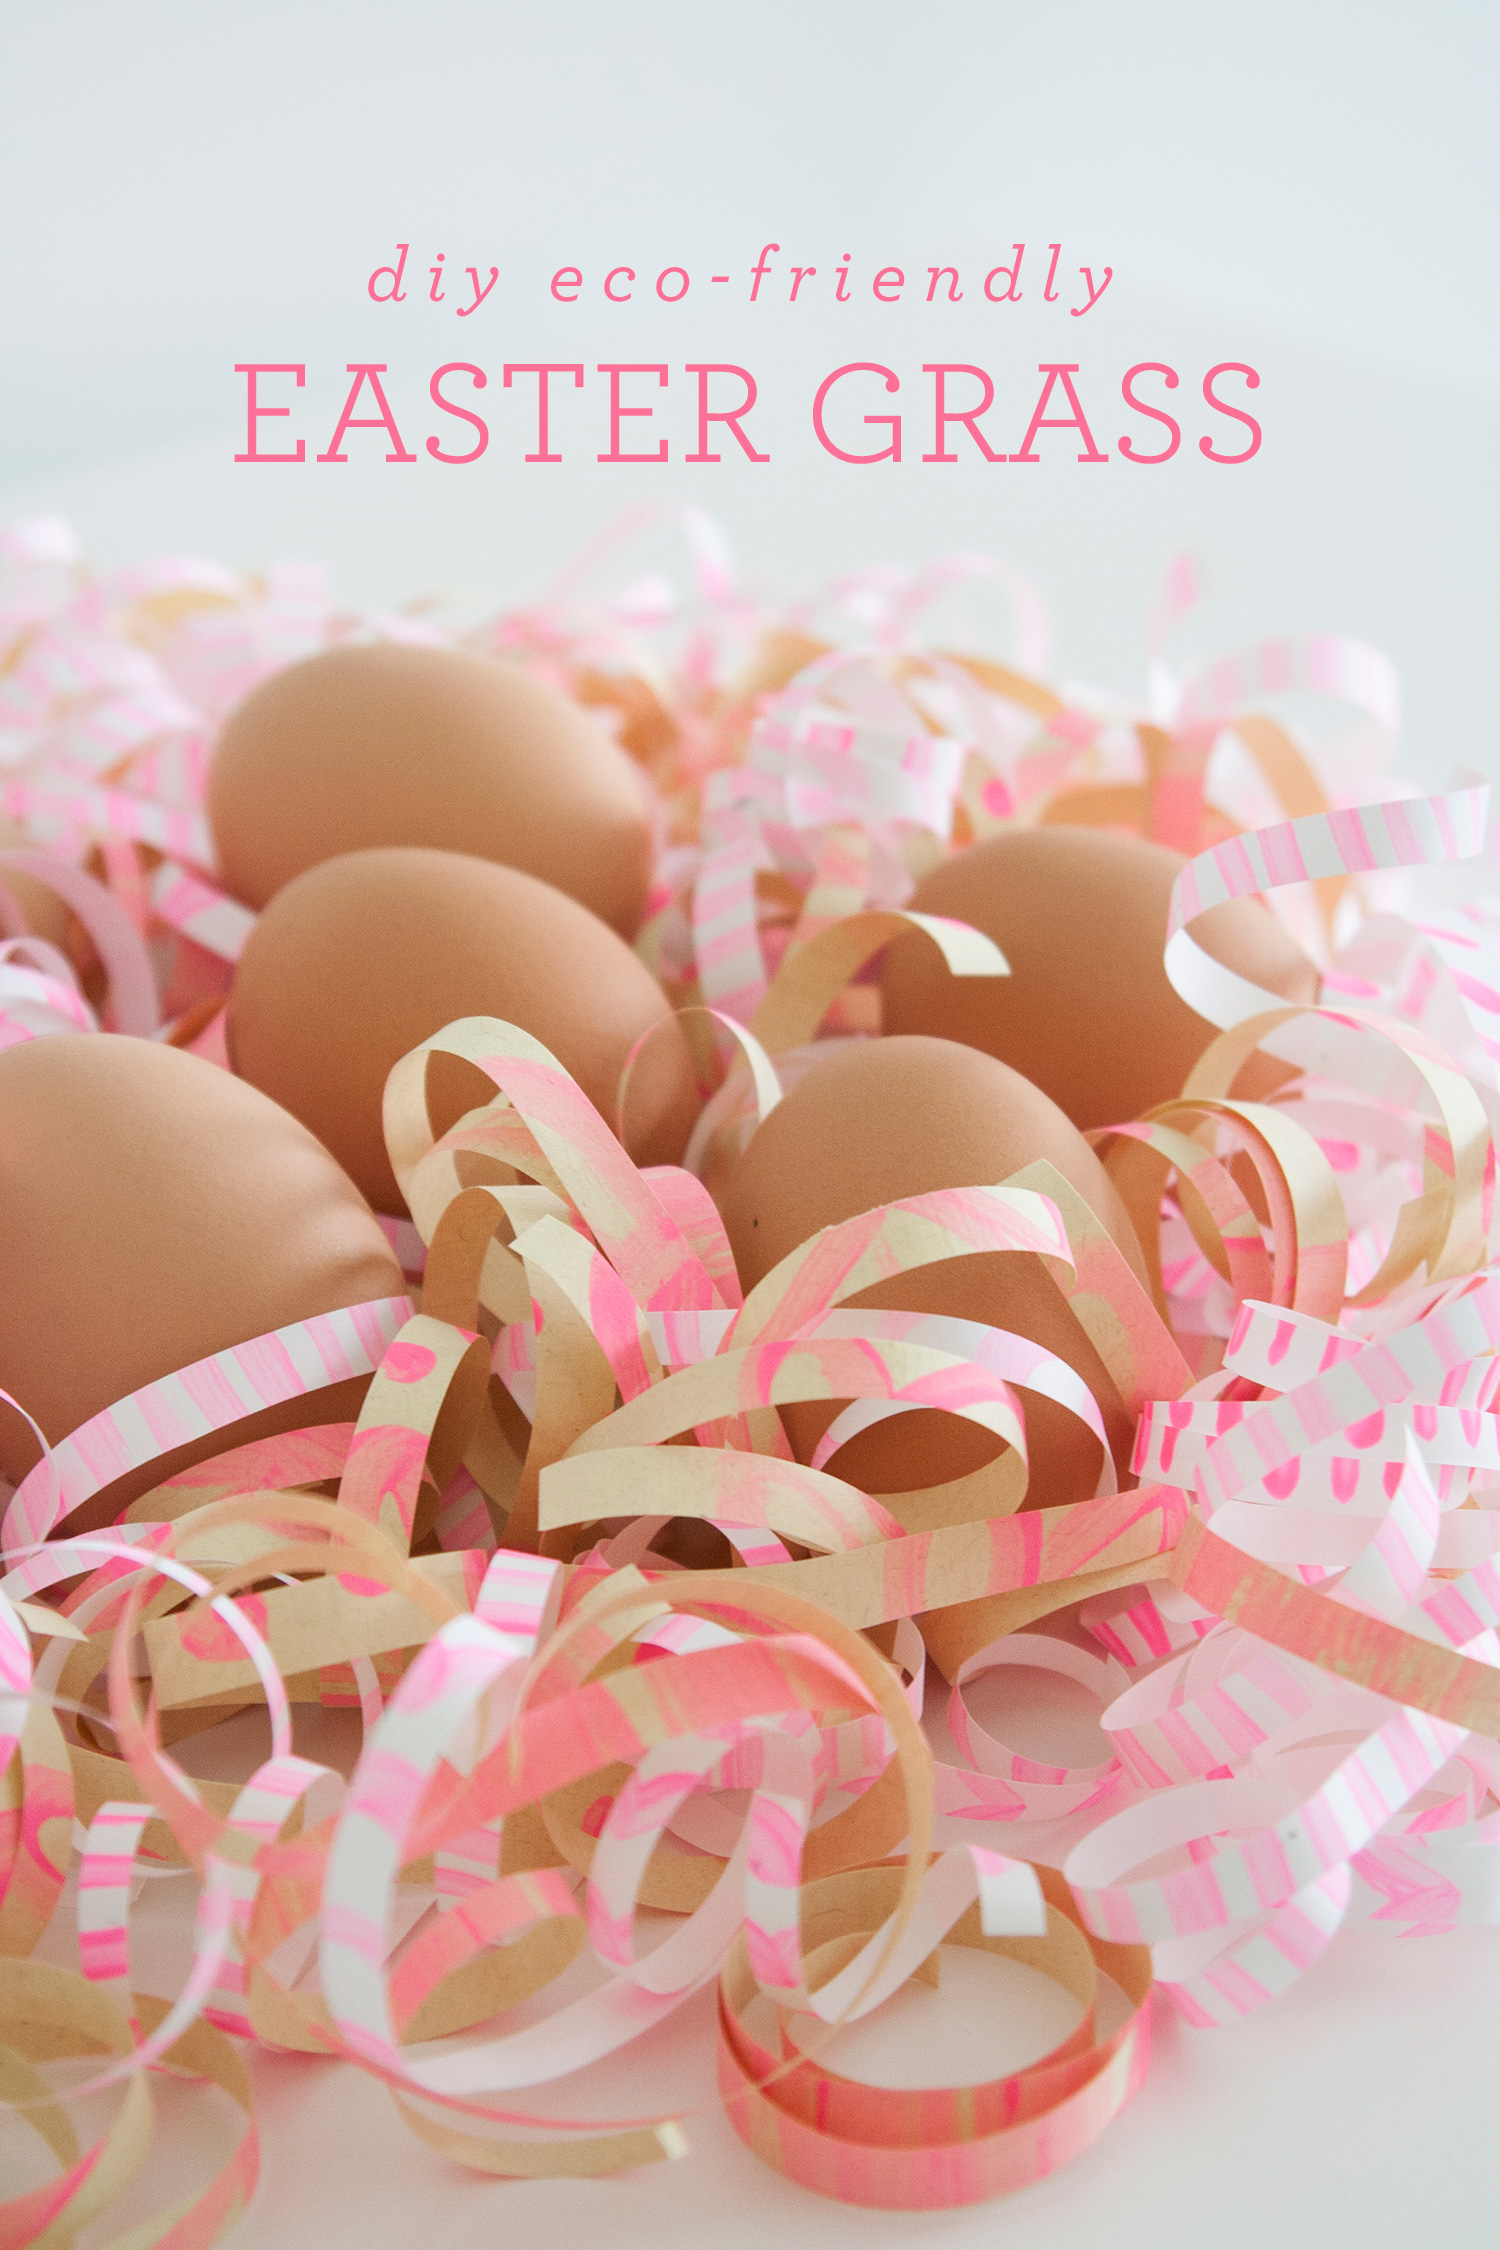 Orange-Paper-Shoppe-DIY-Eco-Friendly-Easter-Grass-13-type.jpg